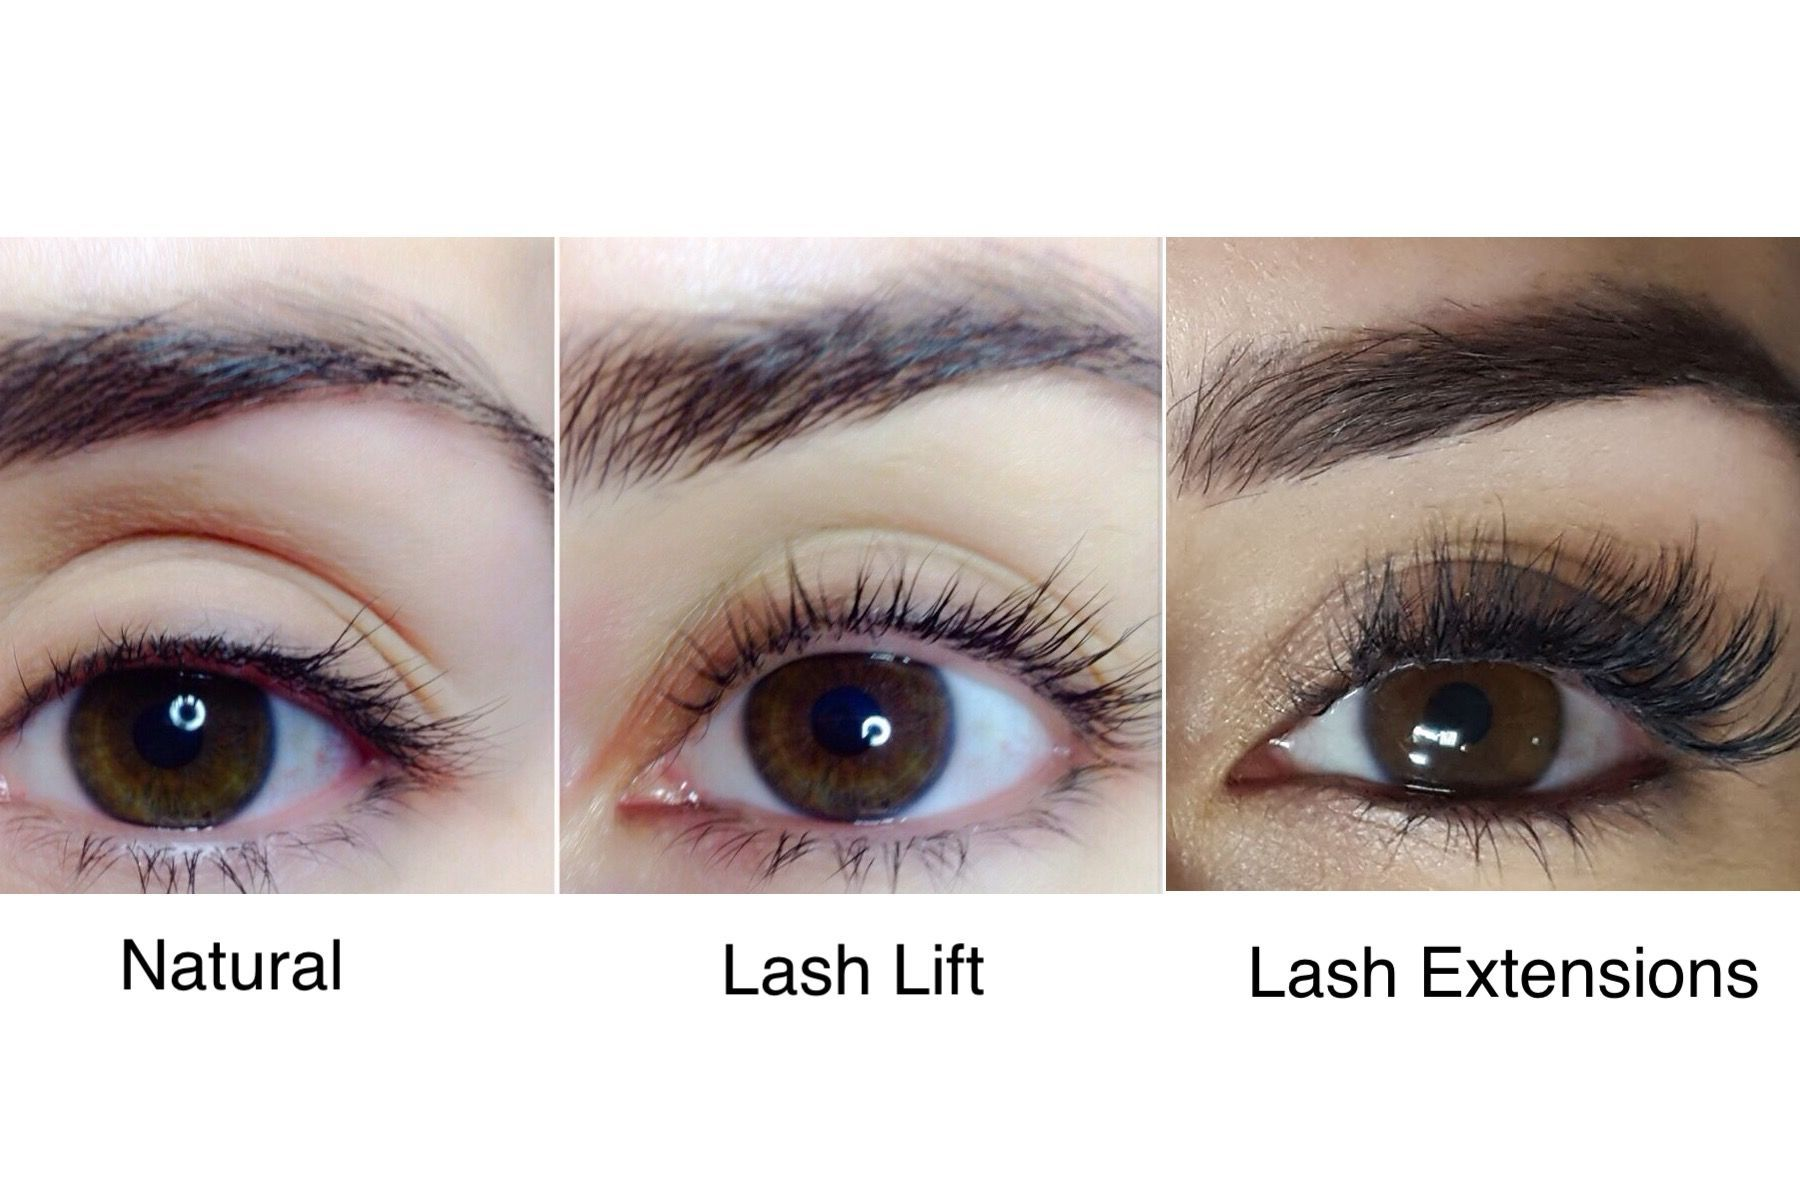 30feaadc6e2 The difference between natural lashes, a lash lift and lash extensions.  Done by @beautybarpickering